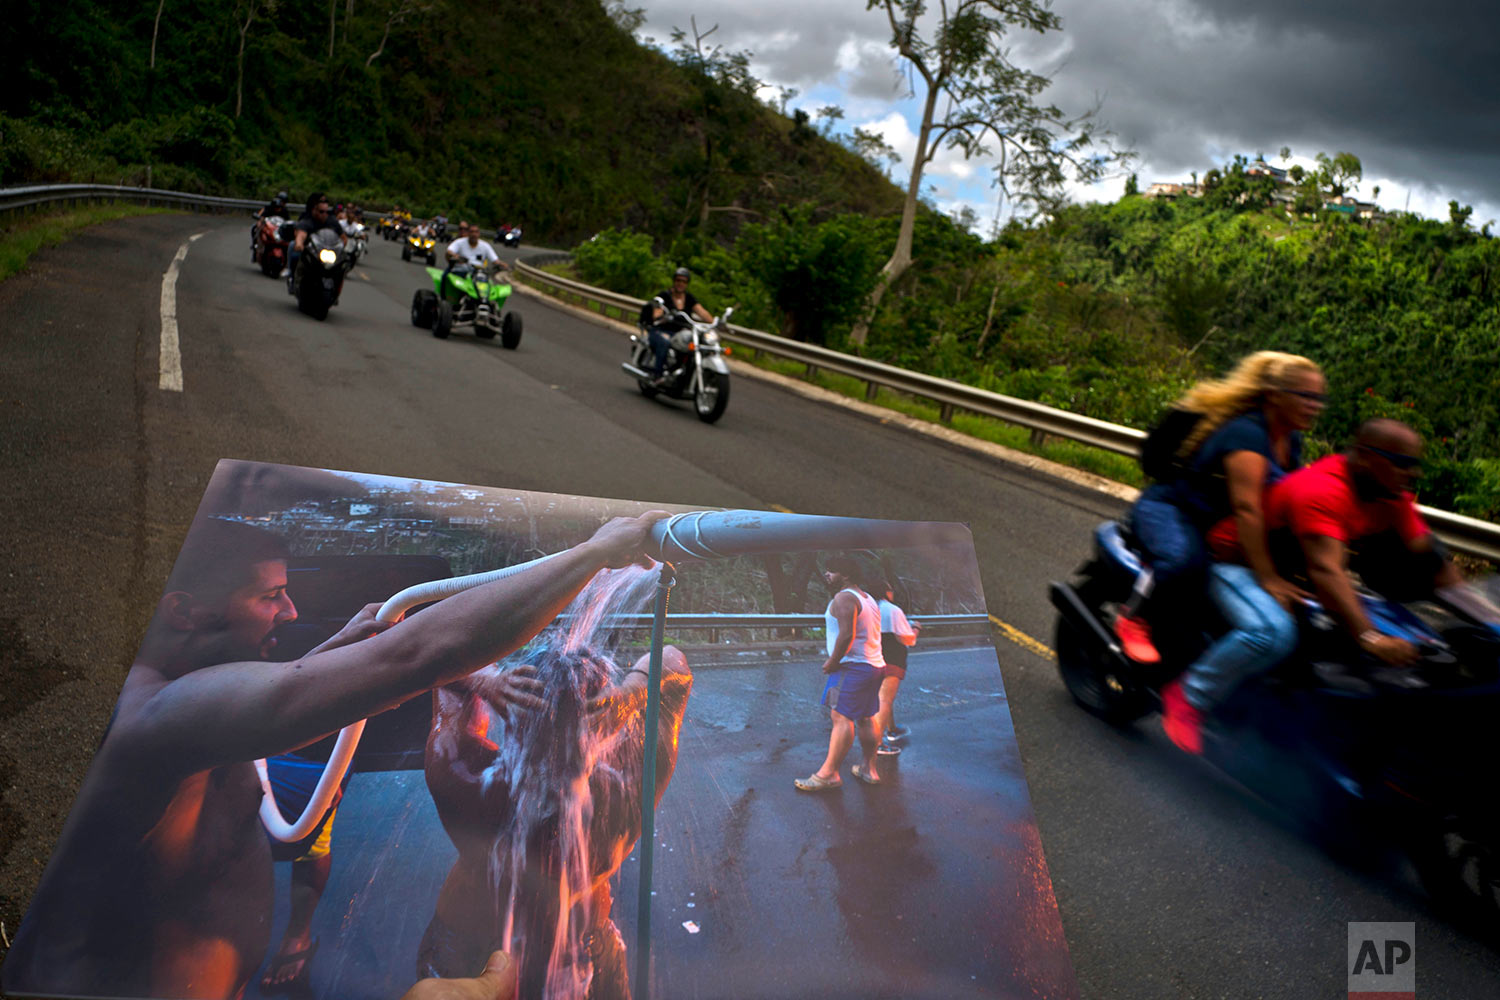 A printed photograph taken on Sept. 28, 2017, is held up at the same spot of the highway, in Naranjito, Puerto Rico, May 27, 2018. (AP Photo/Ramon Espinosa)